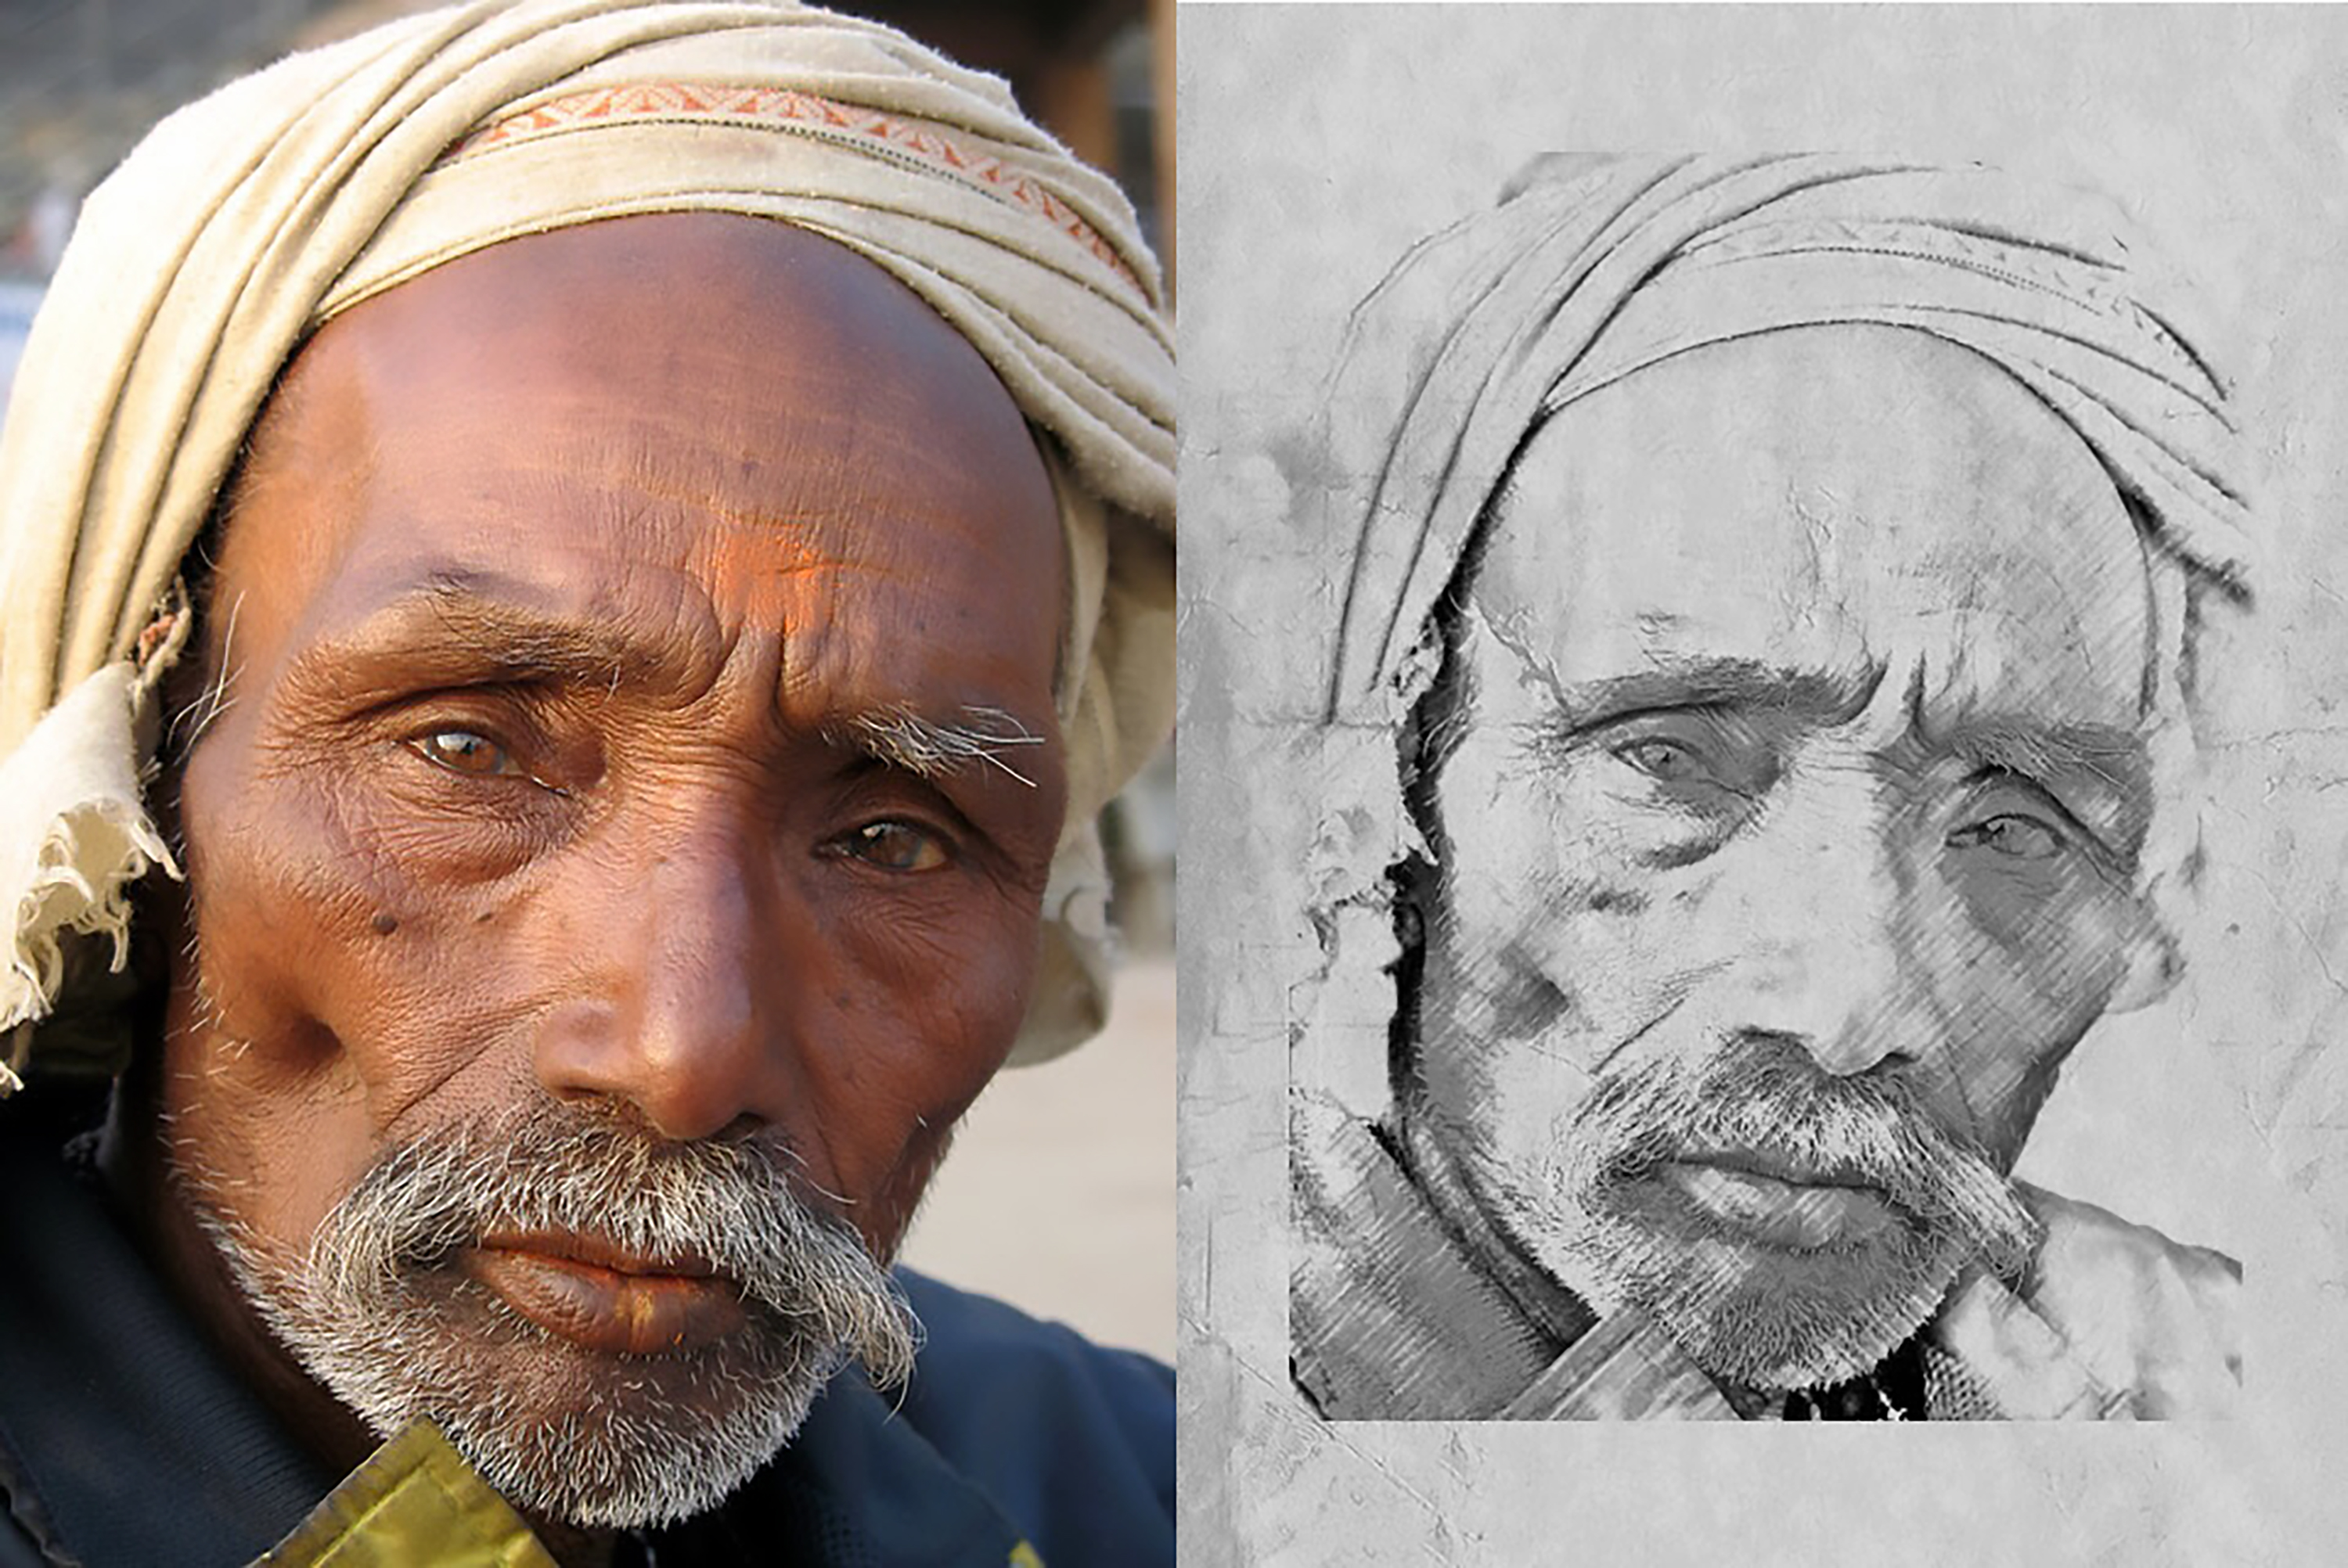 I will turn any photo into realistic pencil sketch